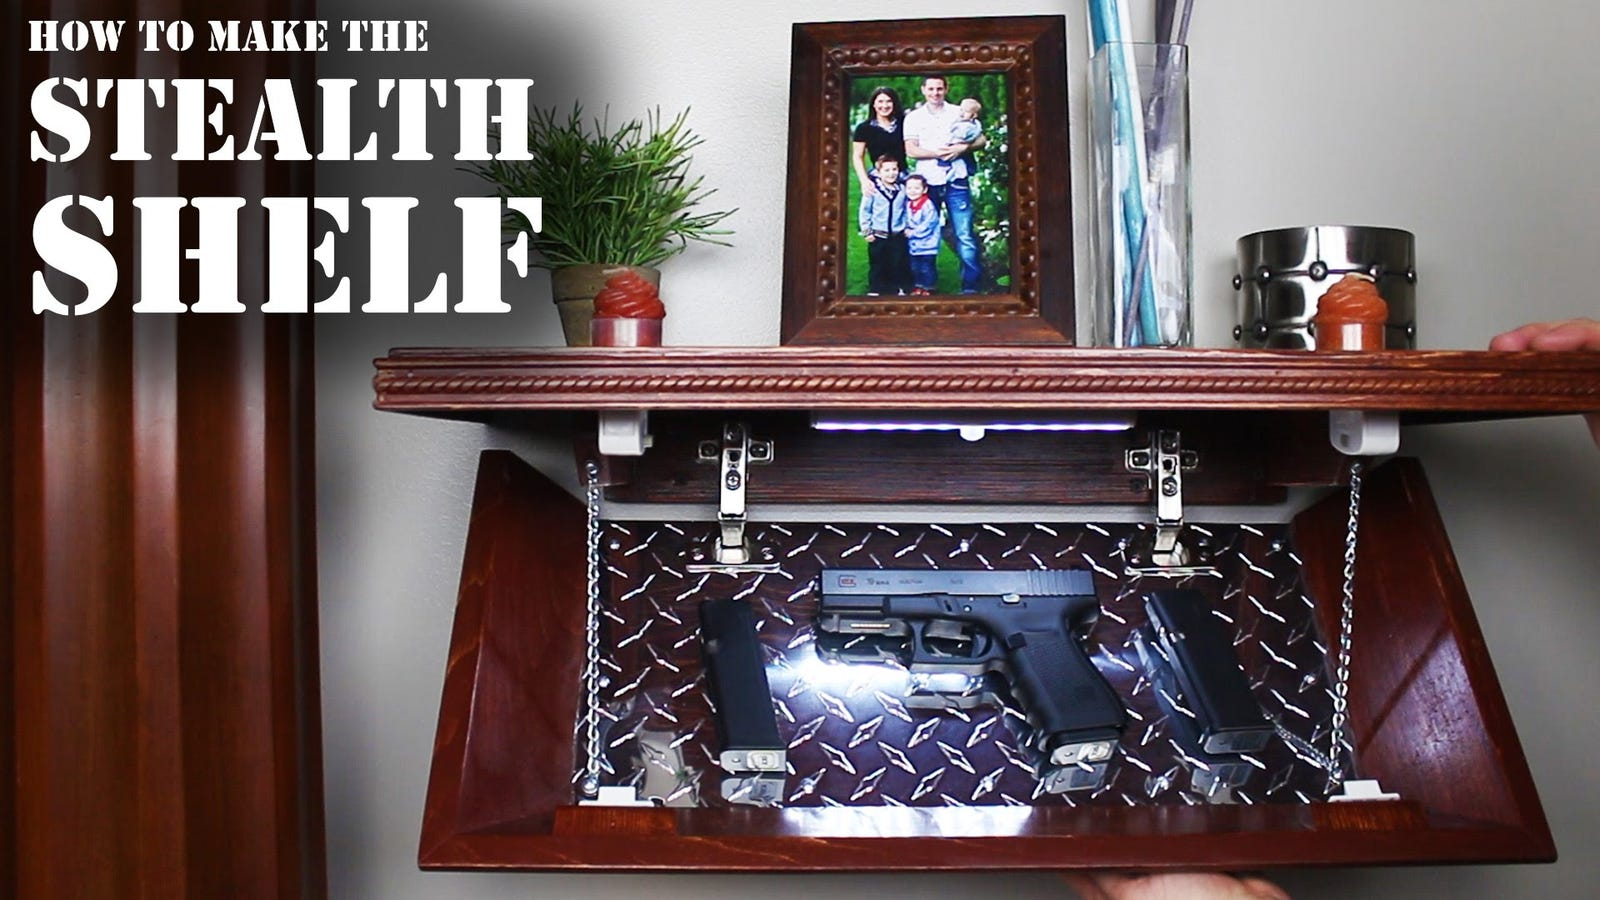 Hide Your Valuables In This Diy Secret Compartment Shelf